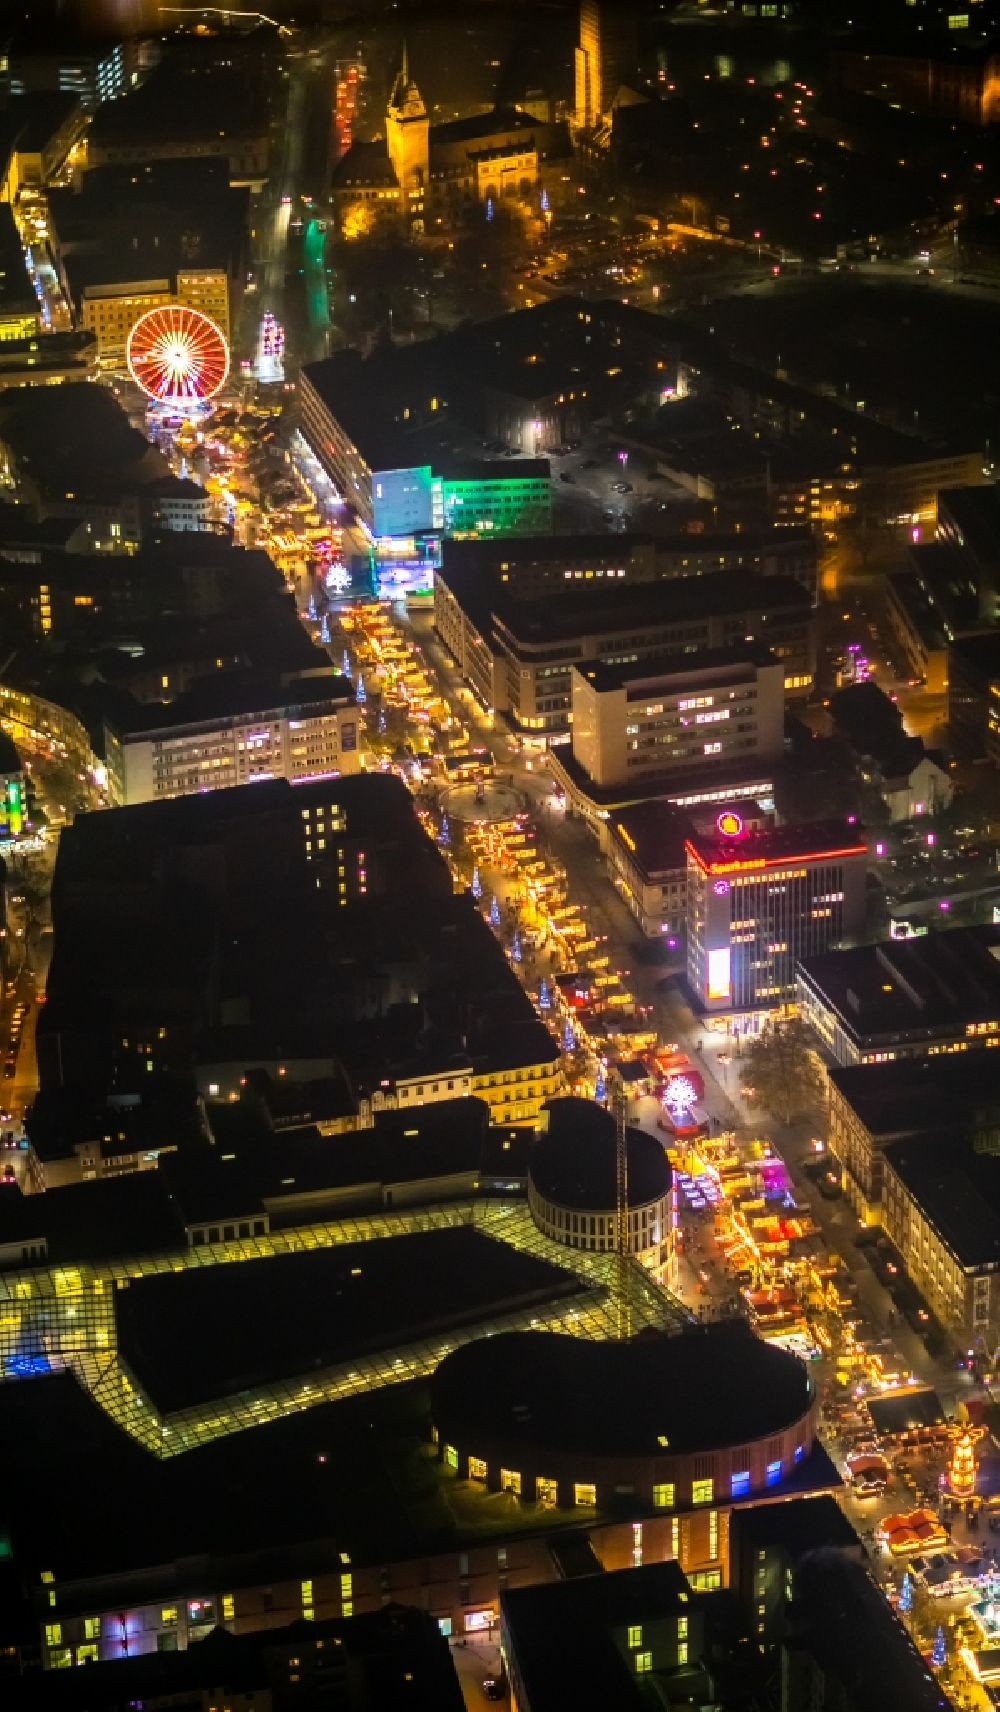 Aerial image at night Duisburg - Night lighting christmassy market event grounds and sale huts and booths auf der Koenigsstrasse in Duisburg in the state North Rhine-Westphalia. In the picture as well the shopping centre Duisburg